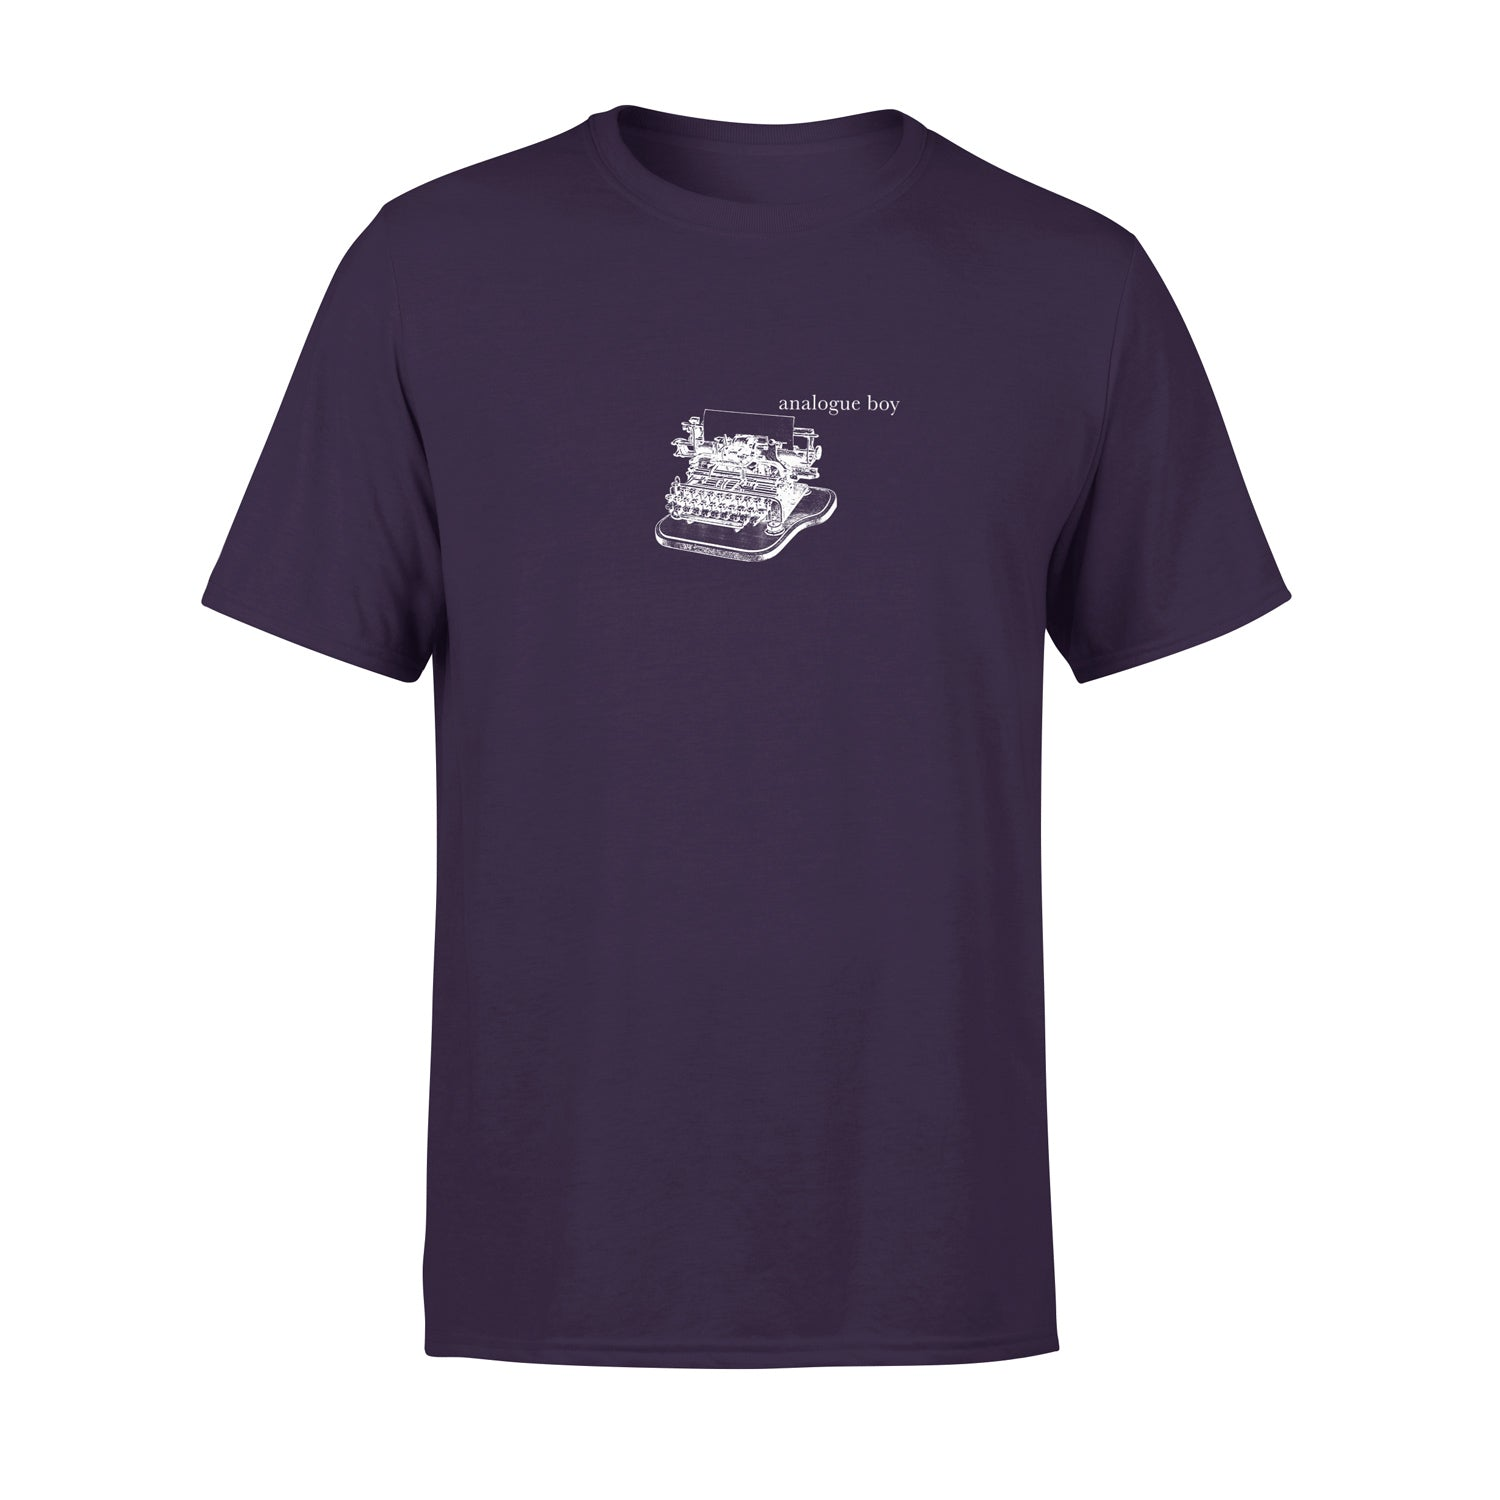 alternative mens t shirt in purple with vintage illustration of typewriter and the words 'analogue boy' typed next to it